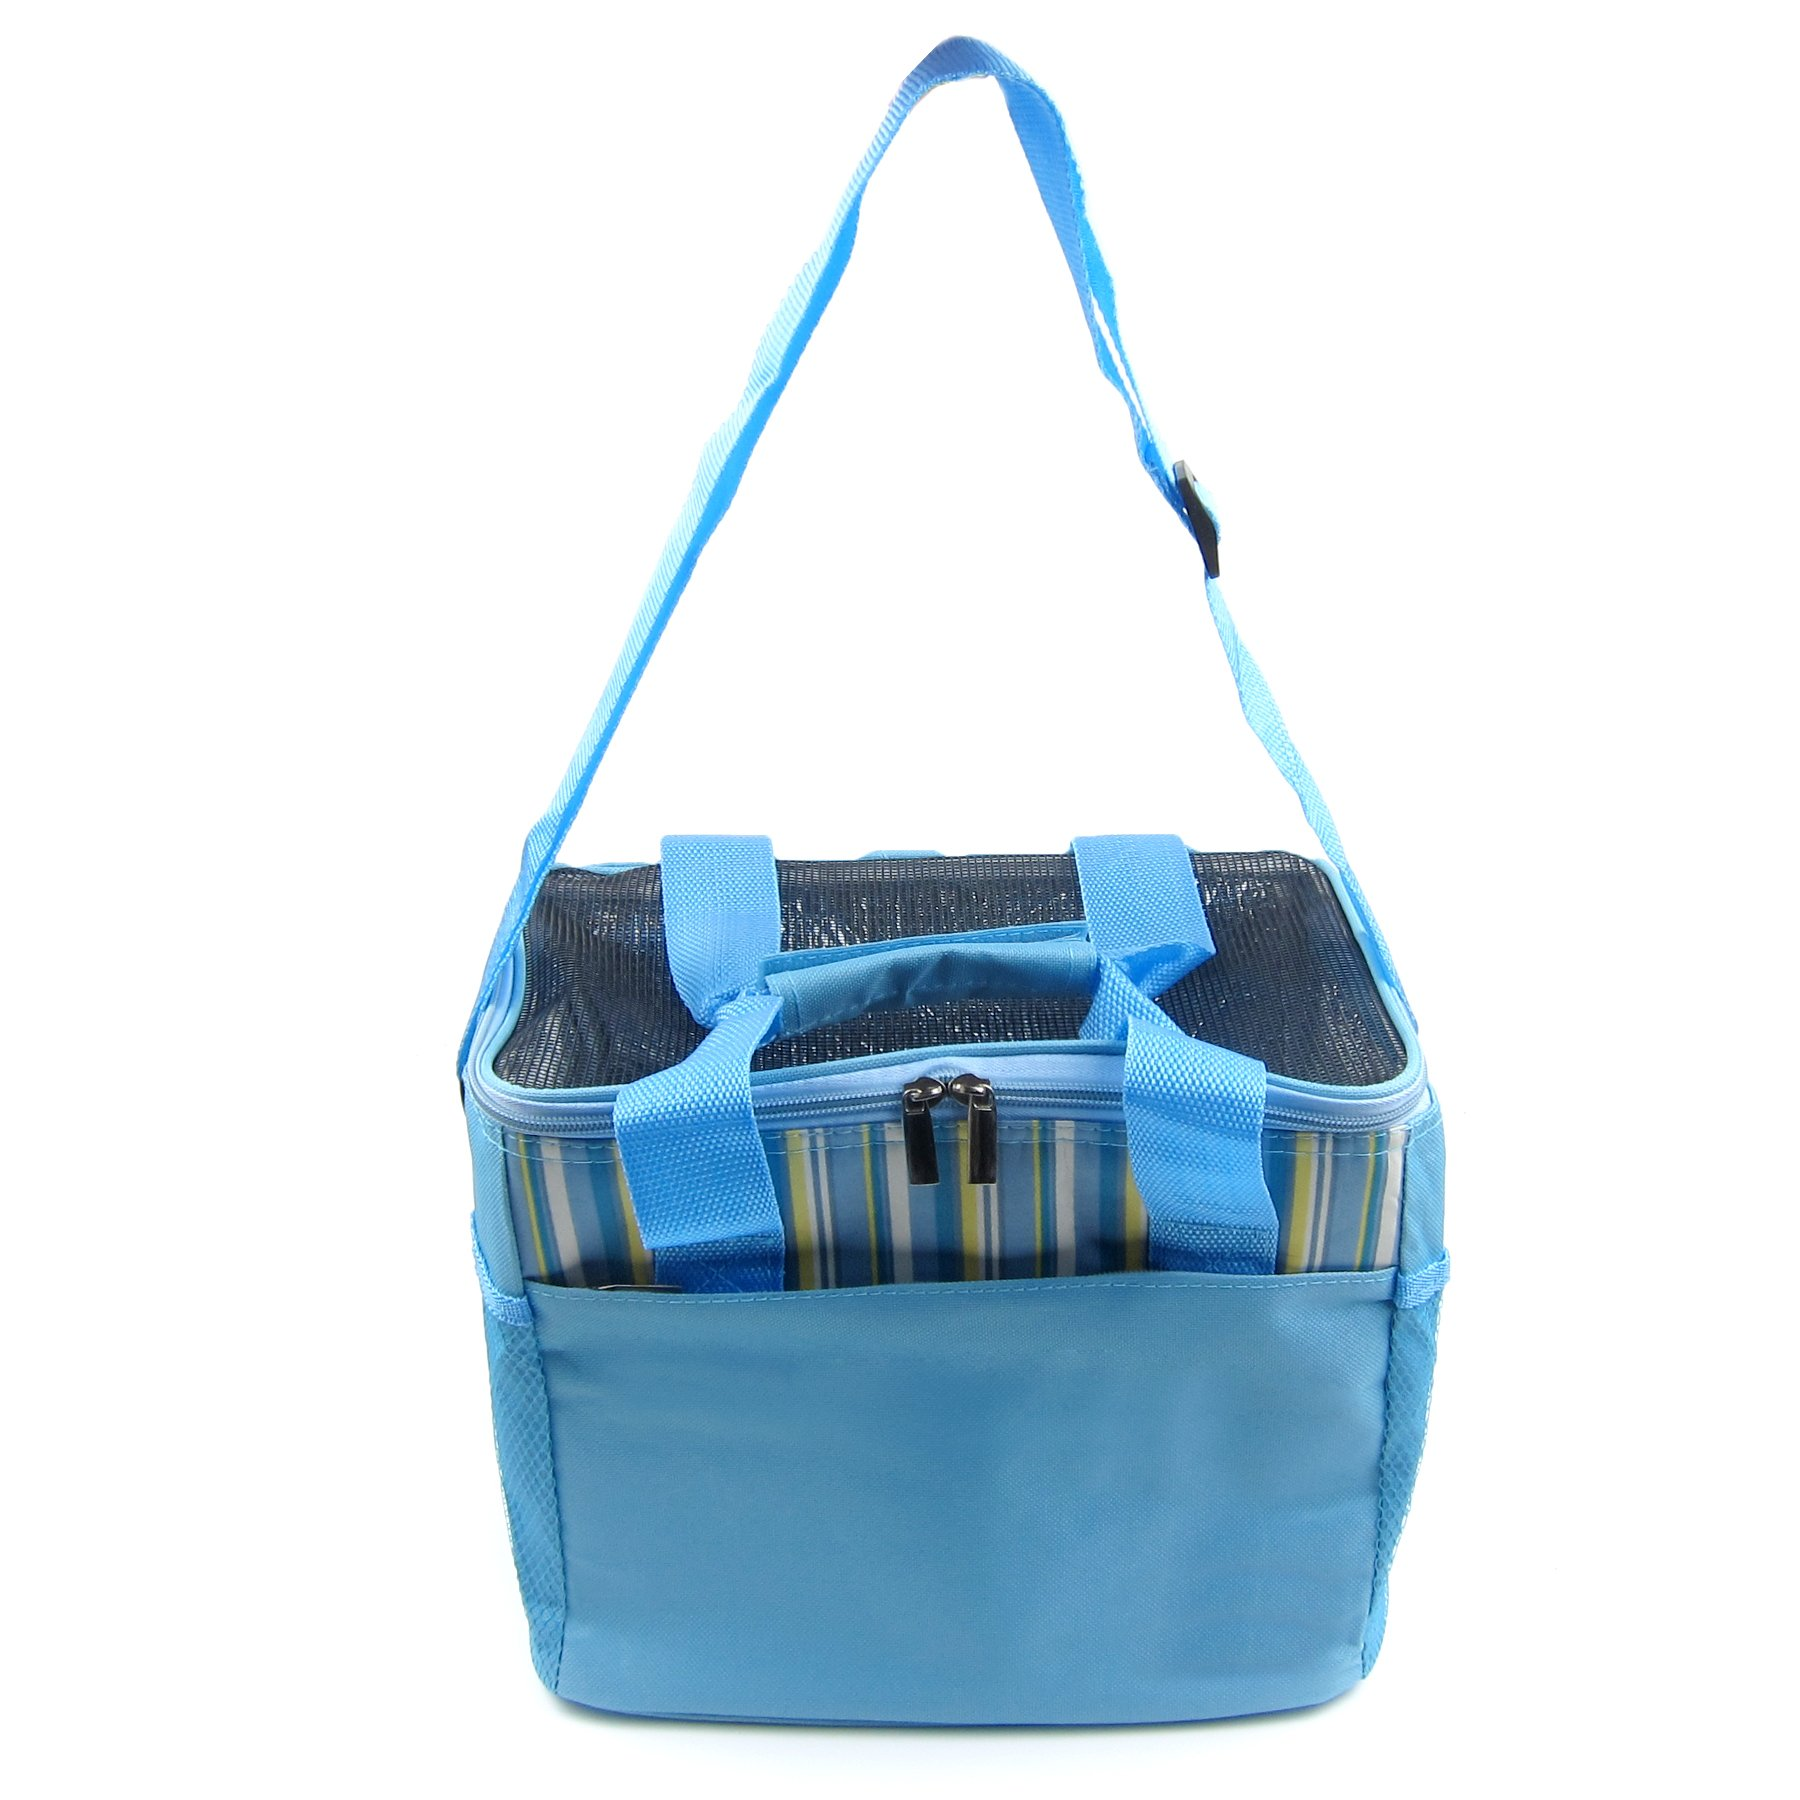 Alfie Pet by Petoga Couture - Jaylen Travel Carrier Vacation House for Small Animals like Dwarf Hamster and Mouse - Color Blue